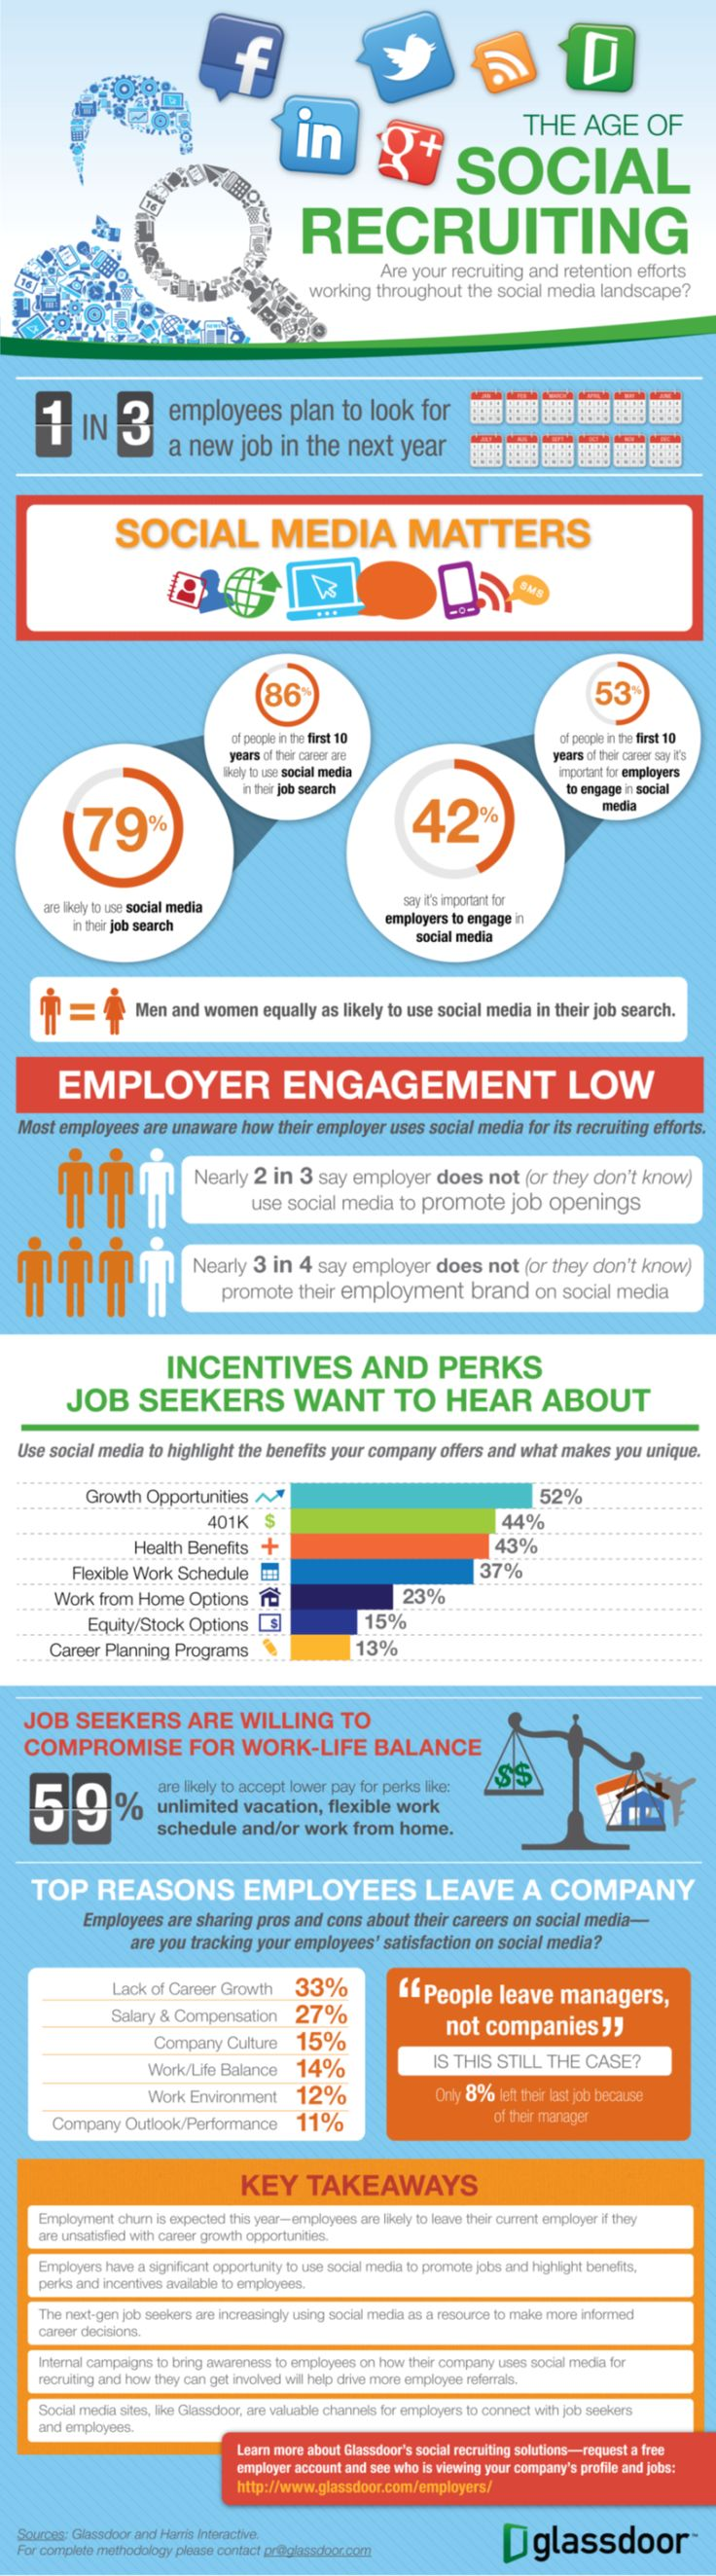 INFOGRAPHIC: The Age of Social Recruiting | Glassdoor Blog.  Glassdoor recently polled users to learn more about the role of social media in the recruiting and retention process.